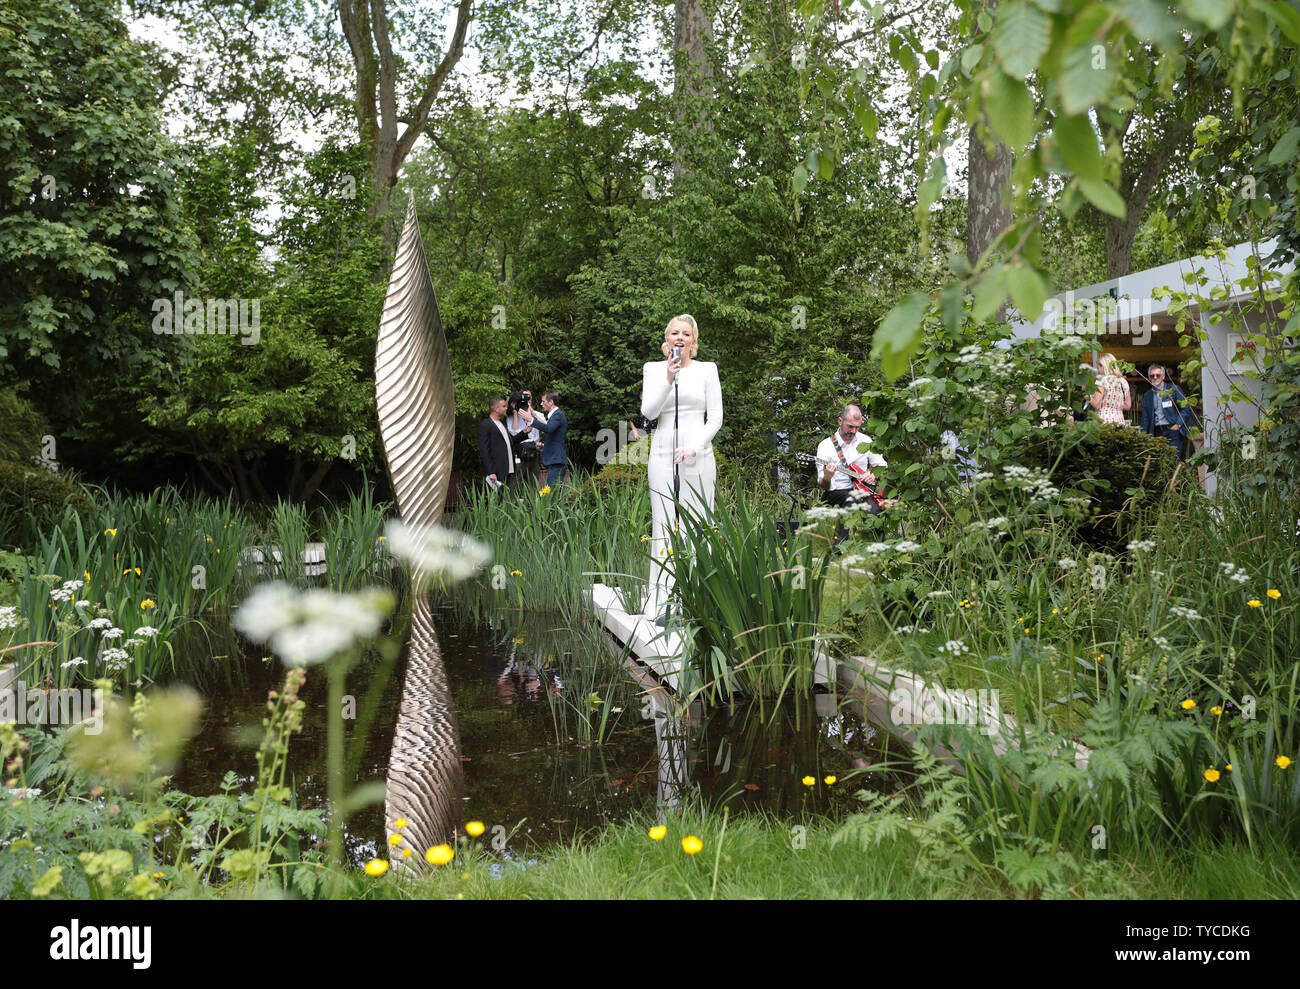 A singer serenades the public in a garden at the Chelsea Flower Show 2019 in London, May 20, 2019.              Photo by Hugo Philpott/UPI - Stock Image